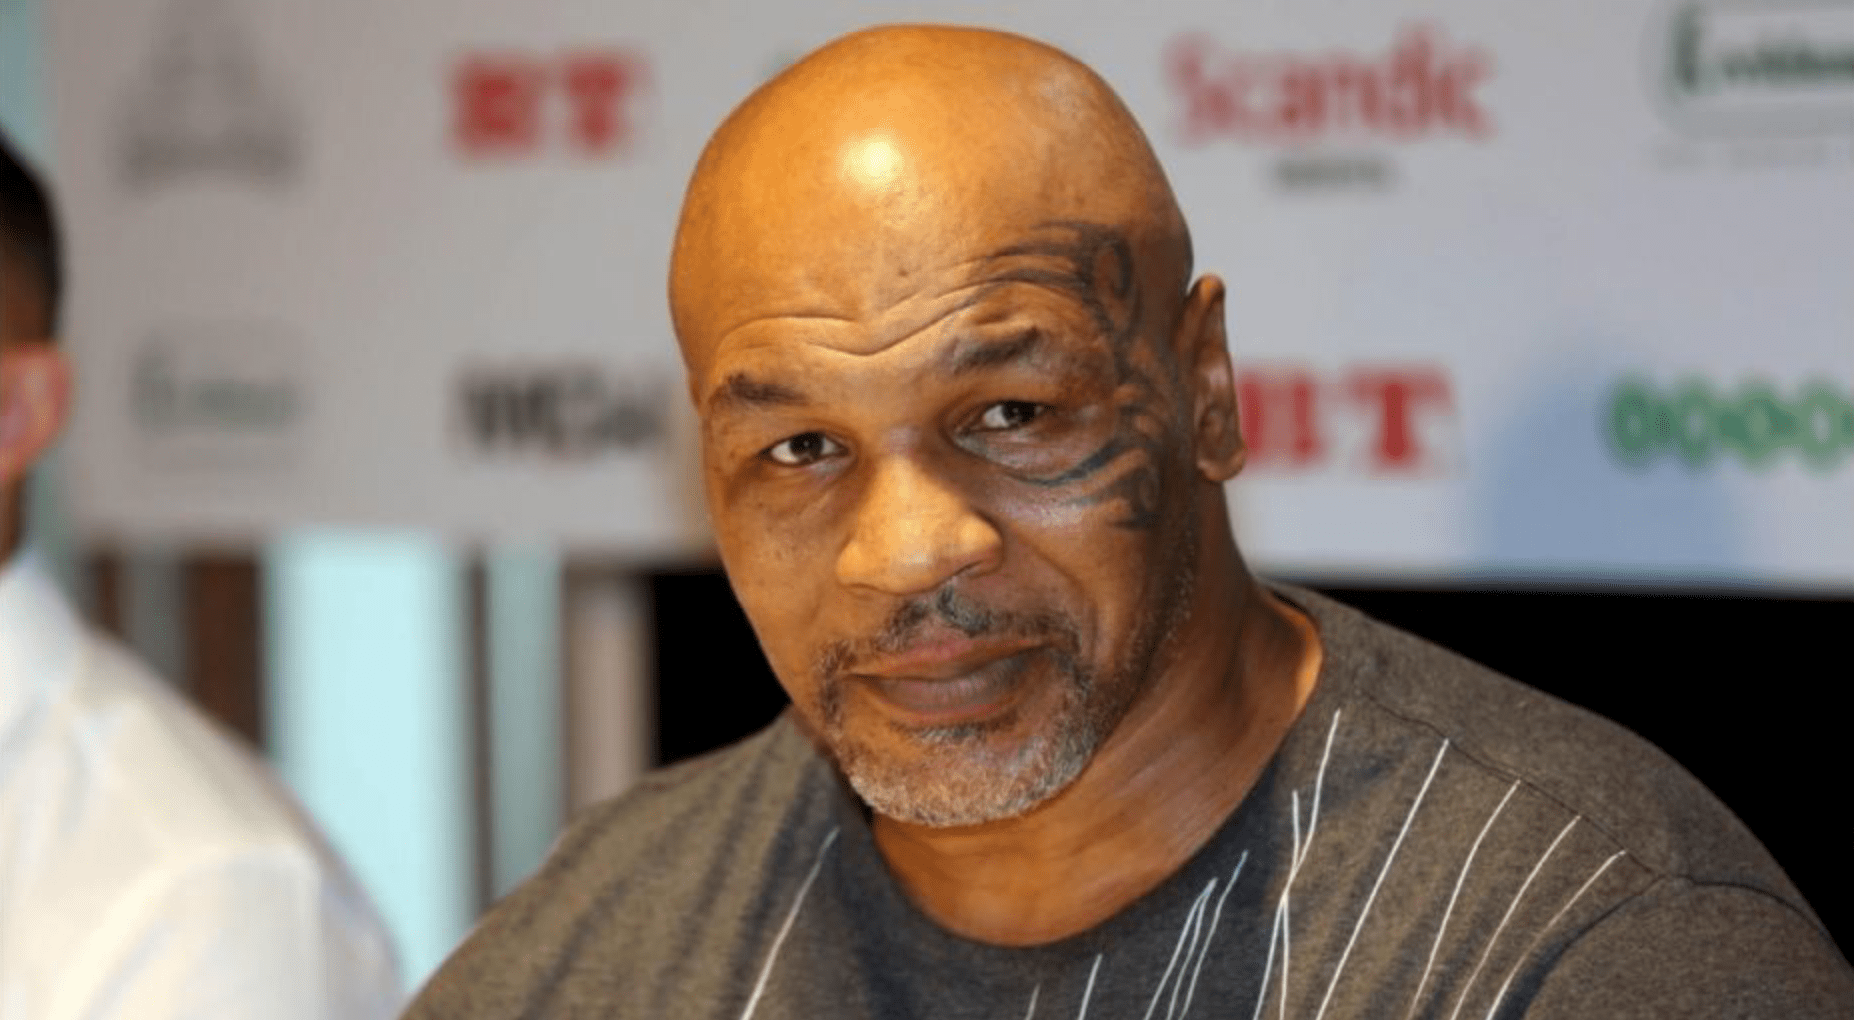 Mike Tyson Willing To Get Back In The Boxing Ring